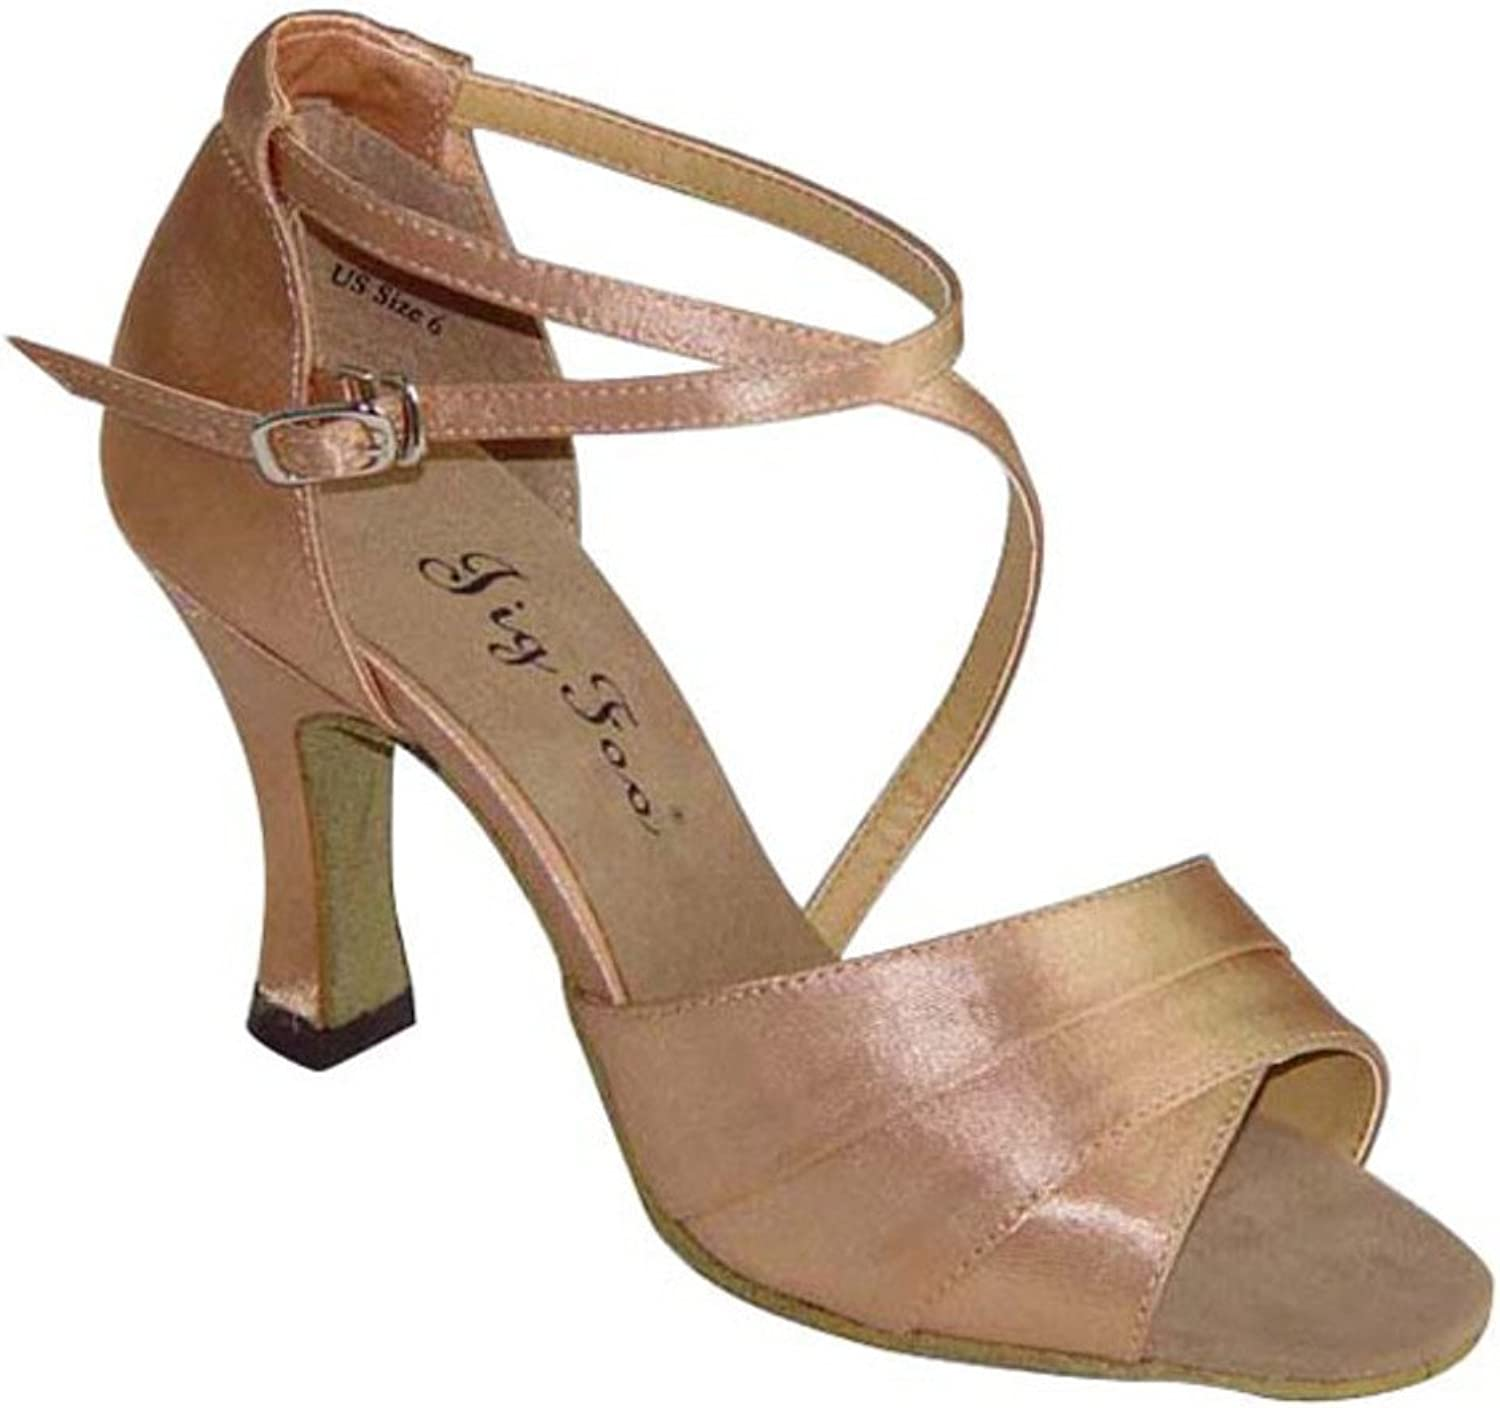 SPLNWTFHCNWPCB Ladies Latin Dance shoes for Adults Soft Sole Non-Slip Dance shoes Dancing shoes